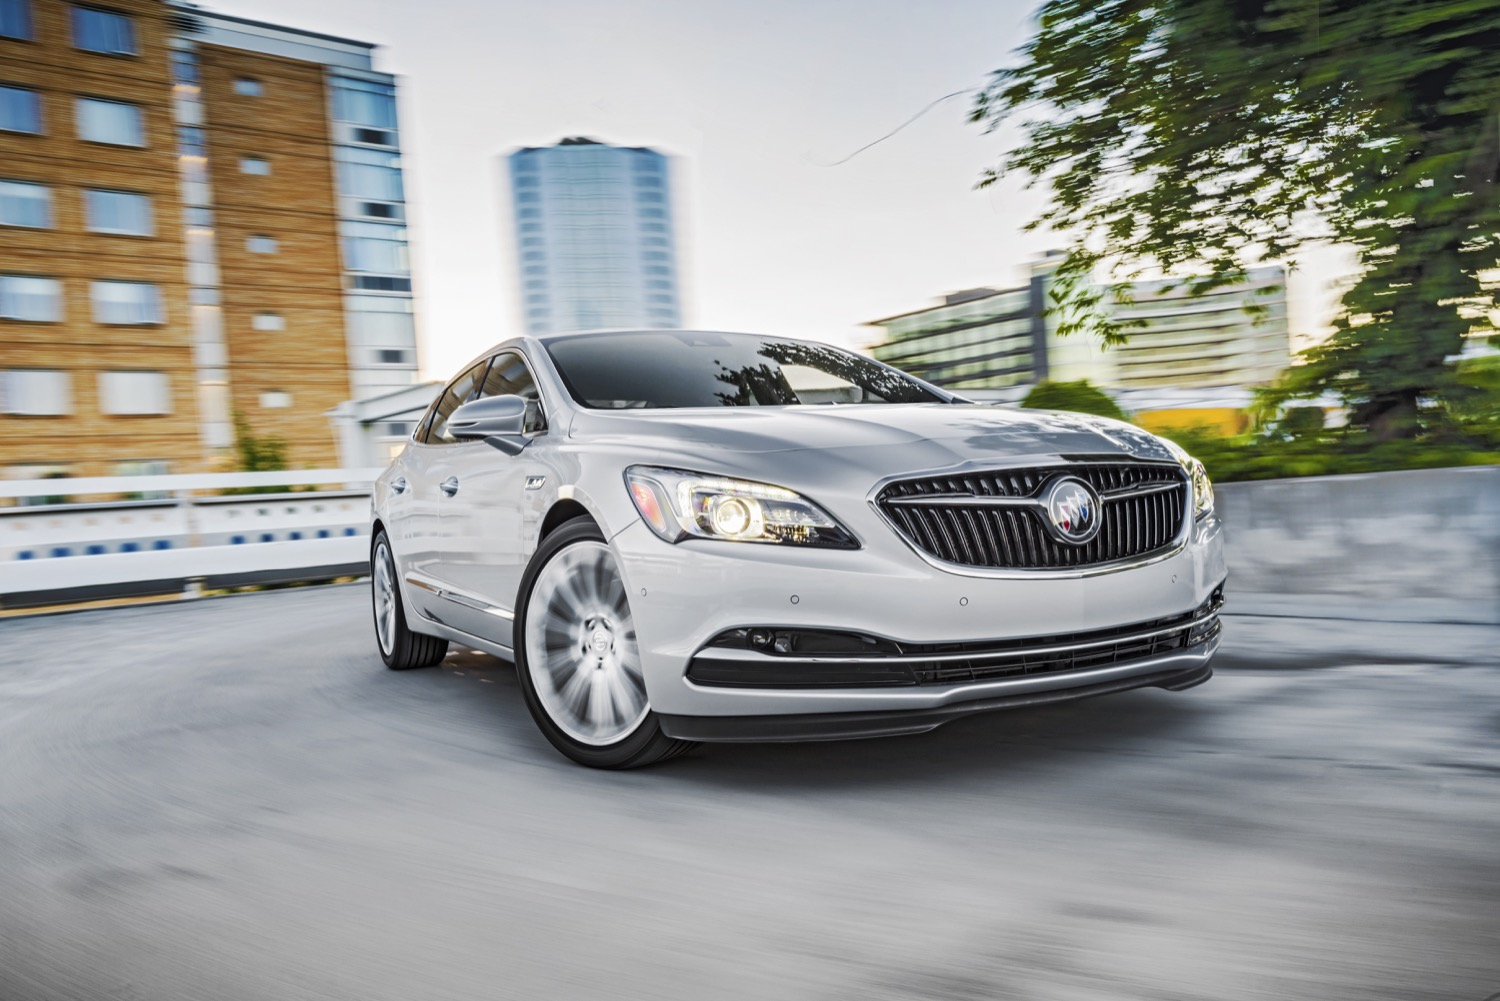 Buick Lacrosse Discount Totals $9,000 February 2020 | Gm New 2021 Buick Lacrosse Lease Deals, Engine, Price